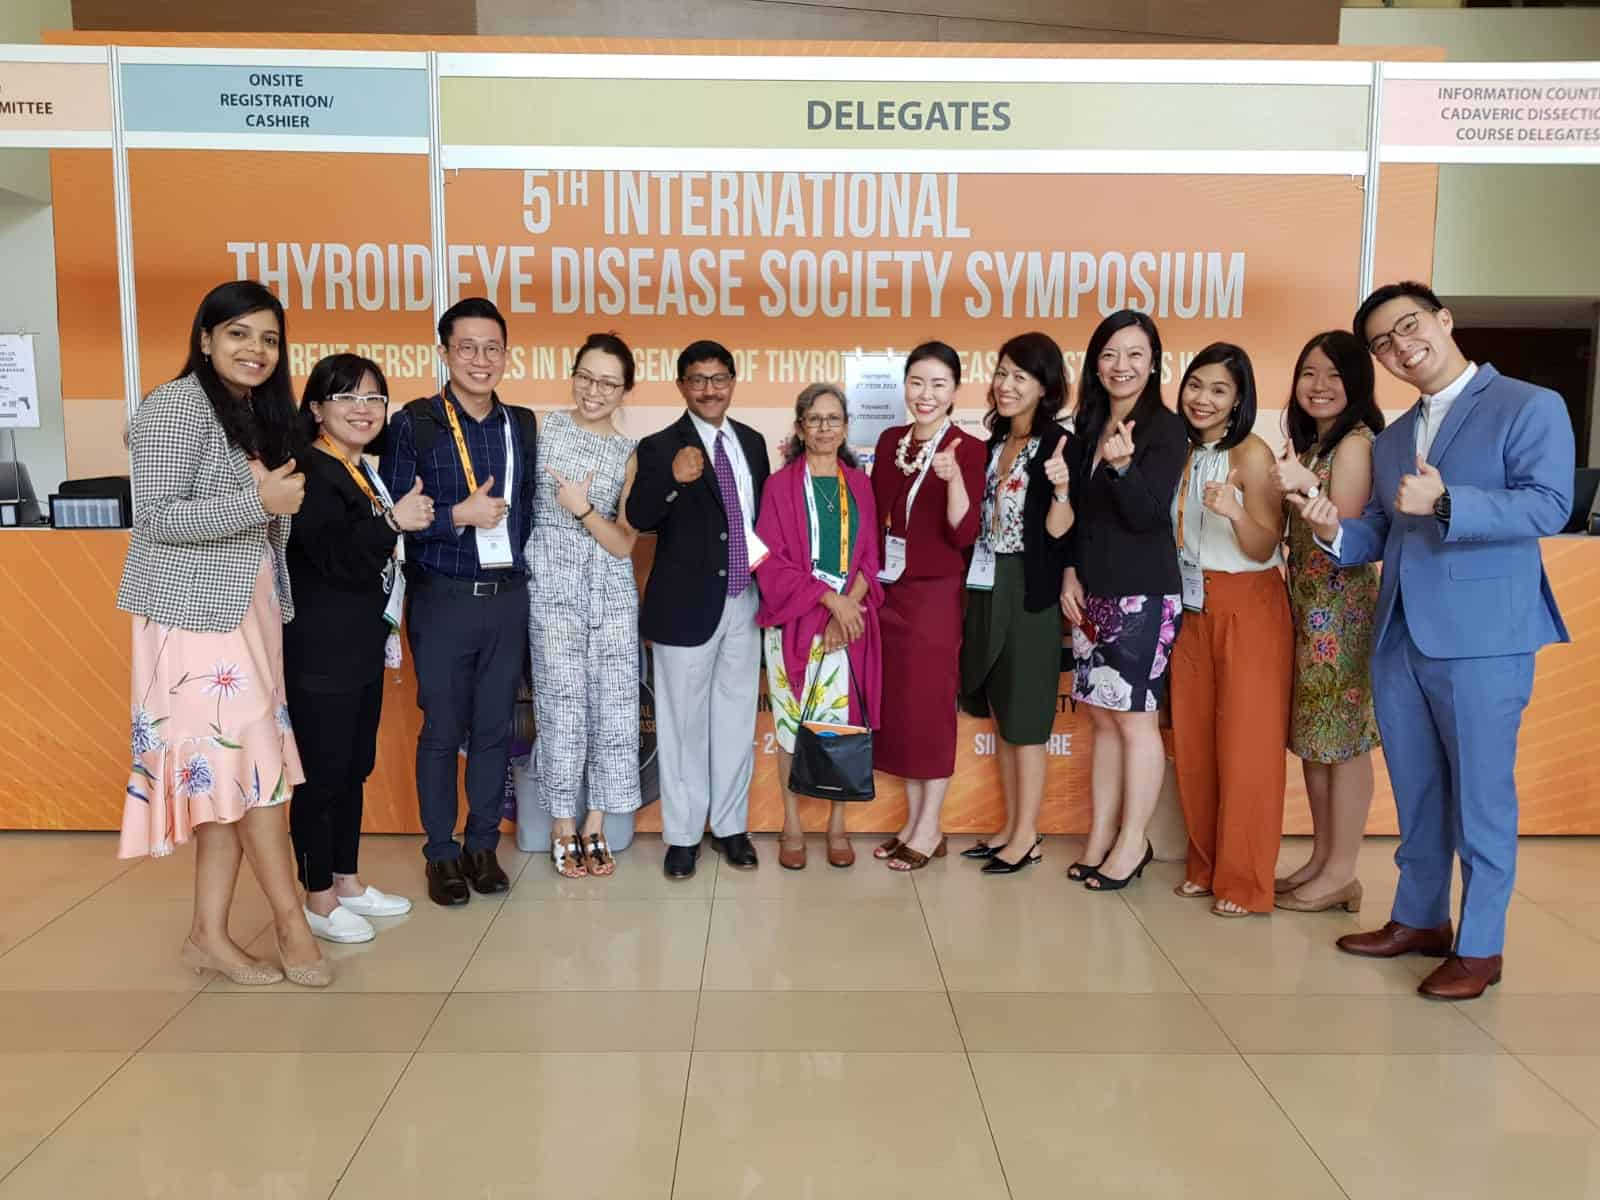 Dr Shantha Amrith (centre) with friends and colleagues at the 5th International Thyroid Eye Disease Society (ITEDS) Symposium held on 20-23 February 2019 in Singapore